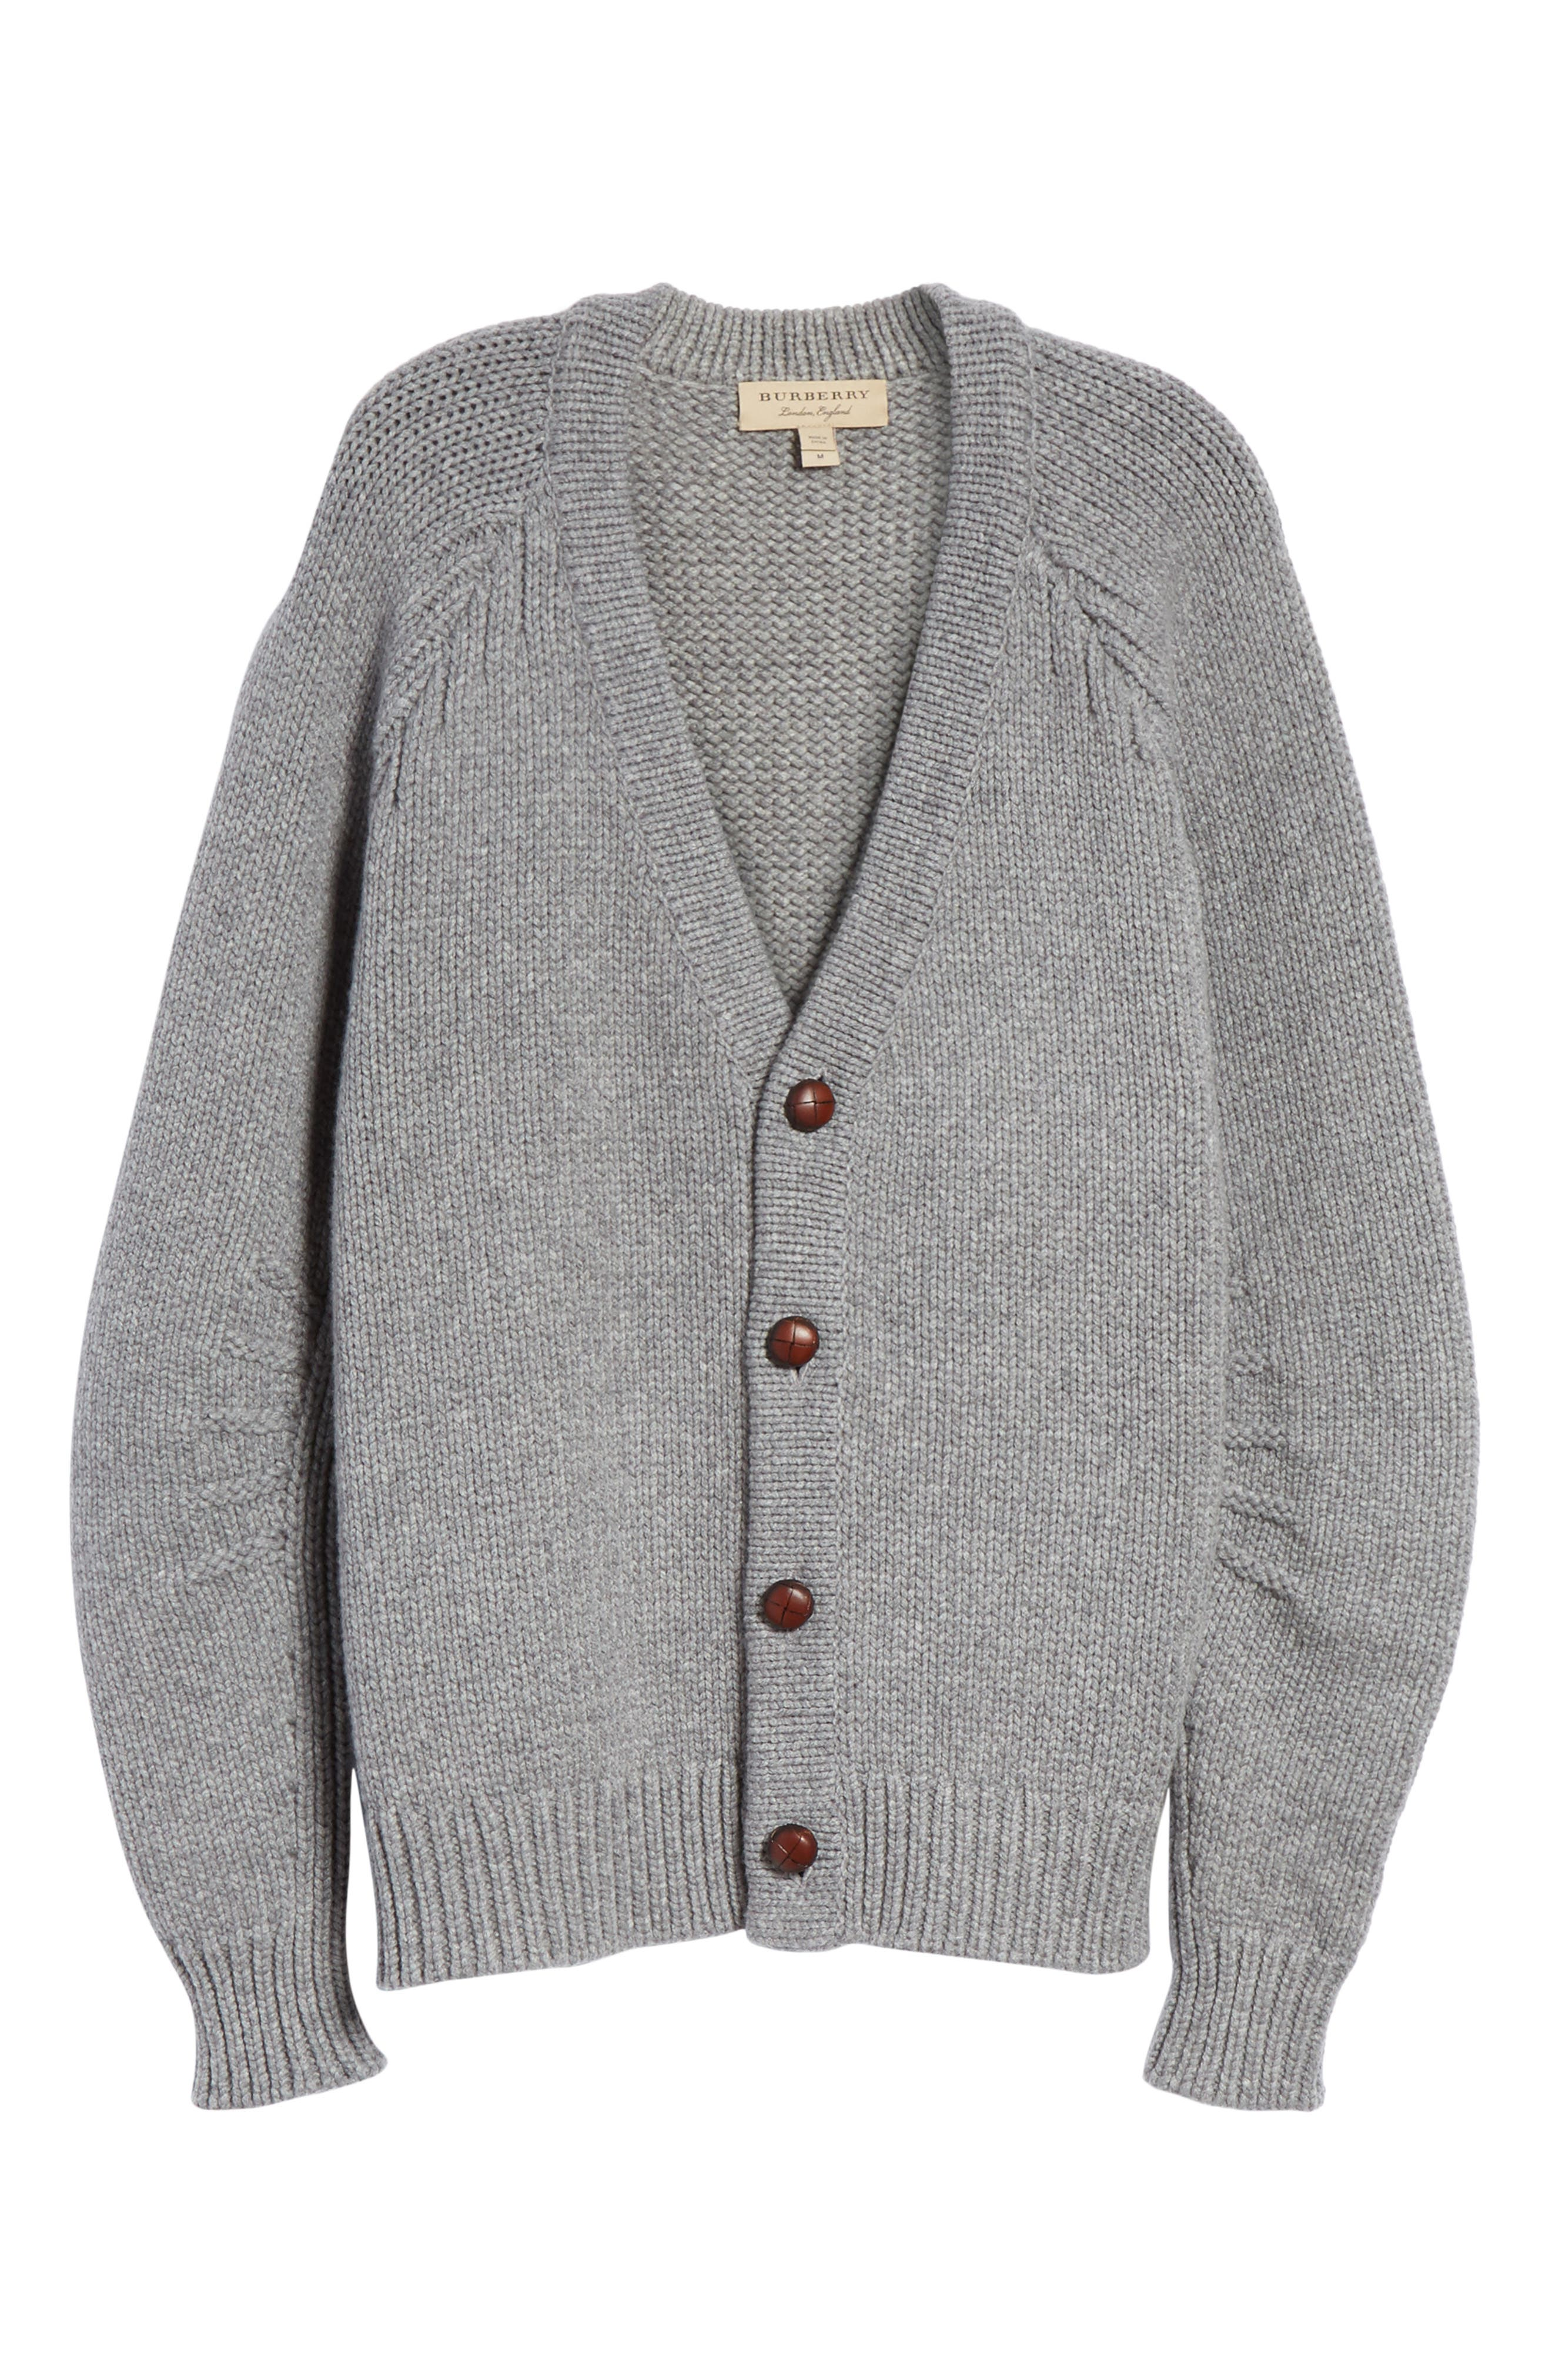 Caldwell Wool & Cashmere Cardigan,                             Alternate thumbnail 6, color,